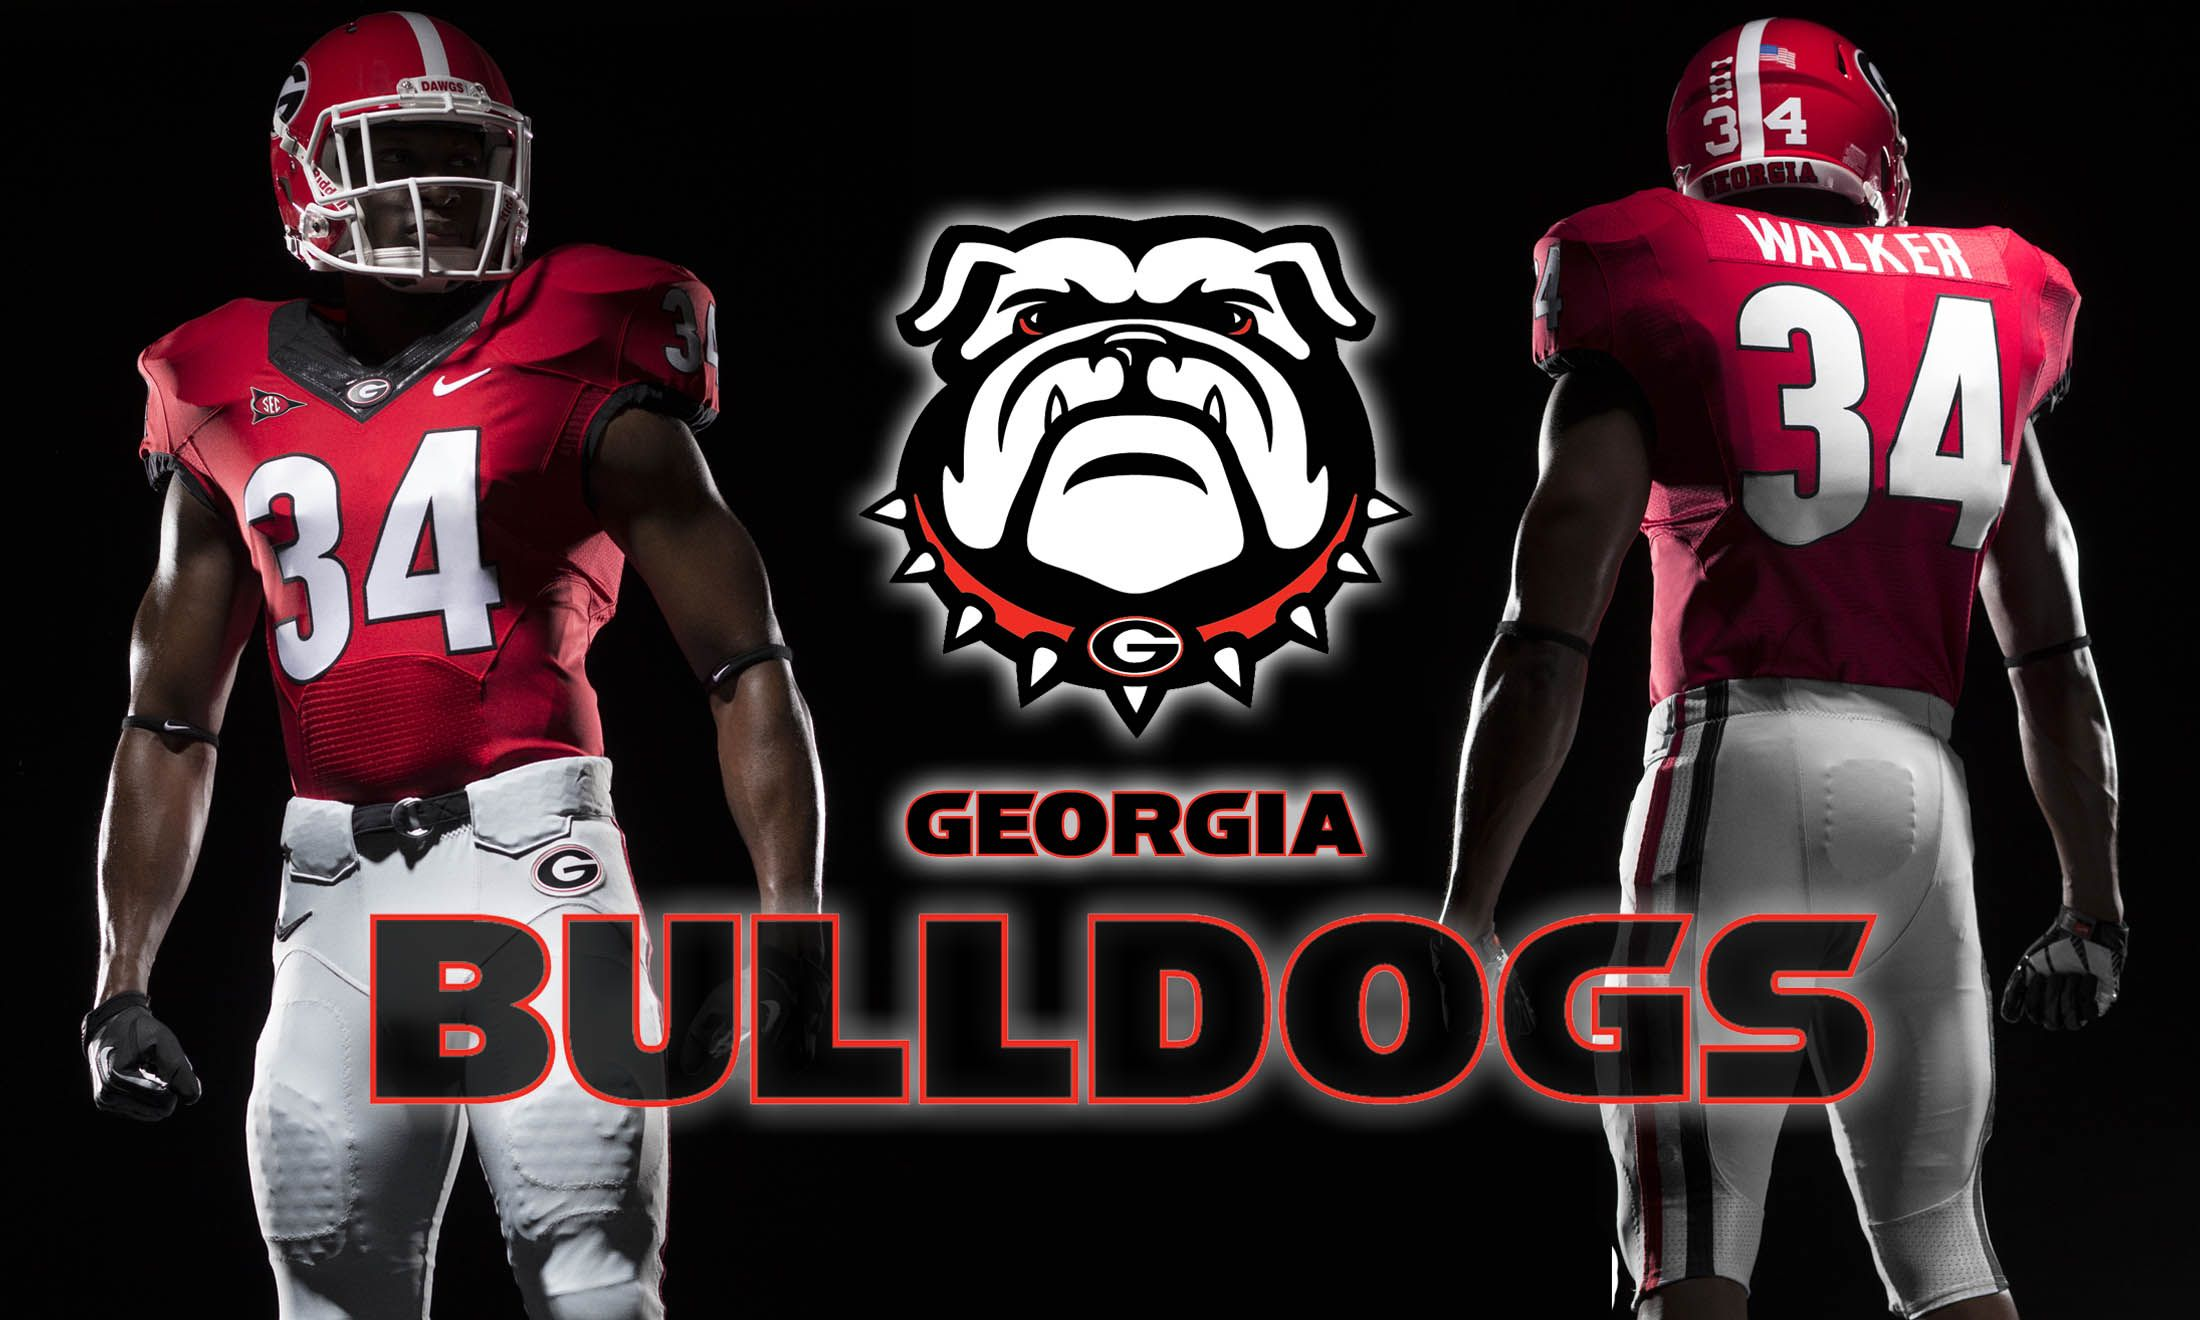 Hd Georgia Bulldogs Wallpaper Georgia Bulldogs Football Georgia